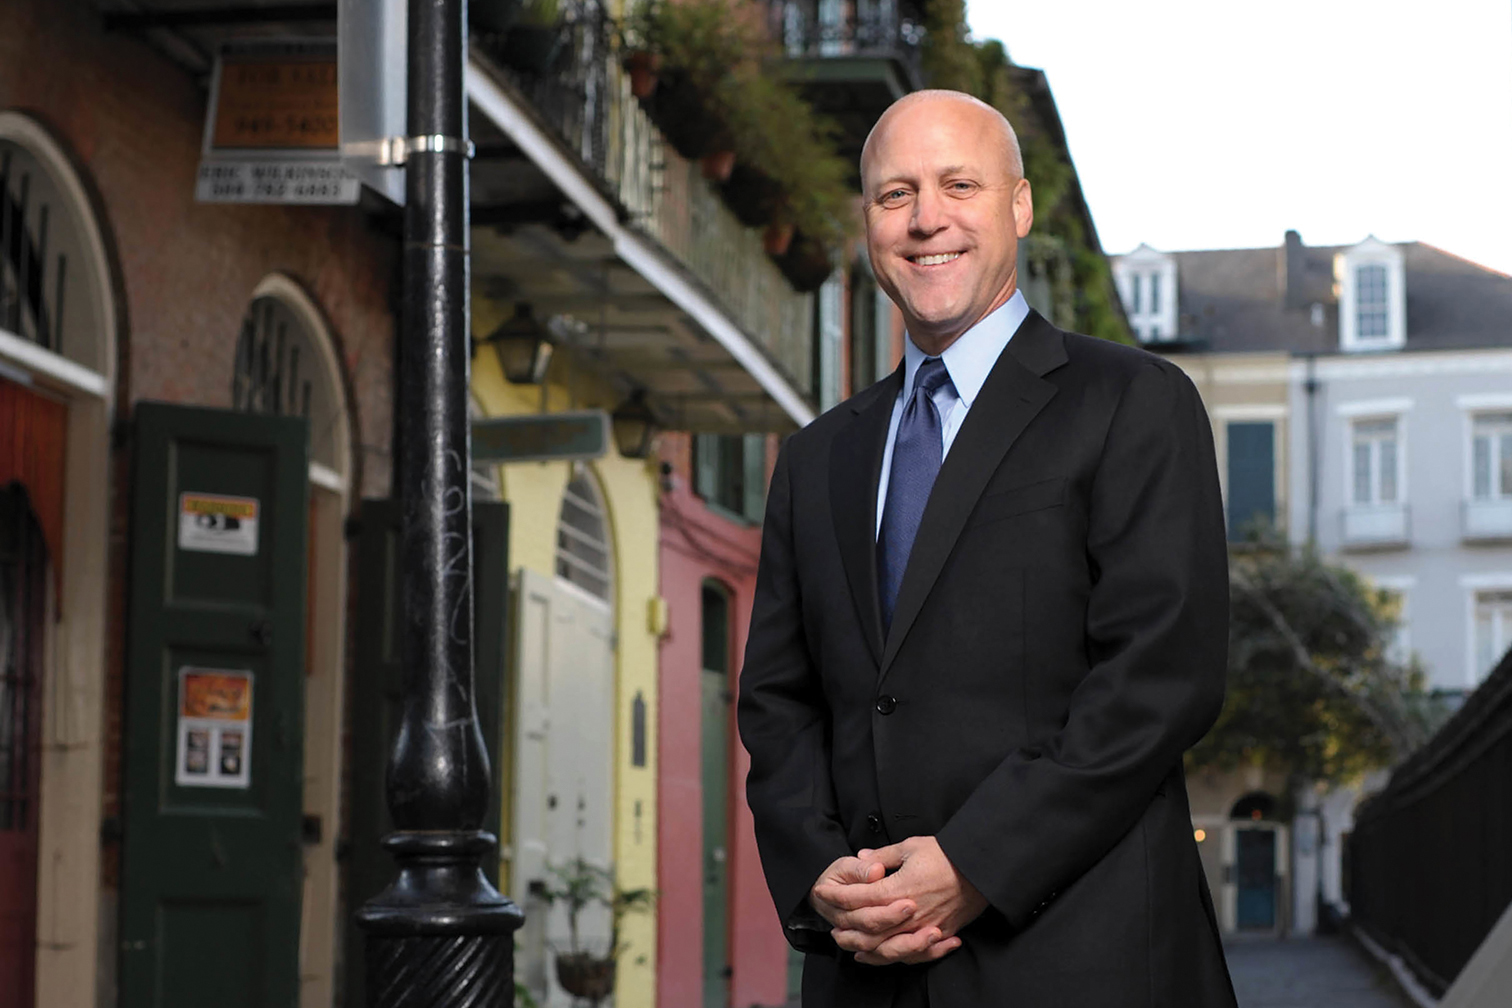 Mitch Landrieu, Former Mayor of New Orleans